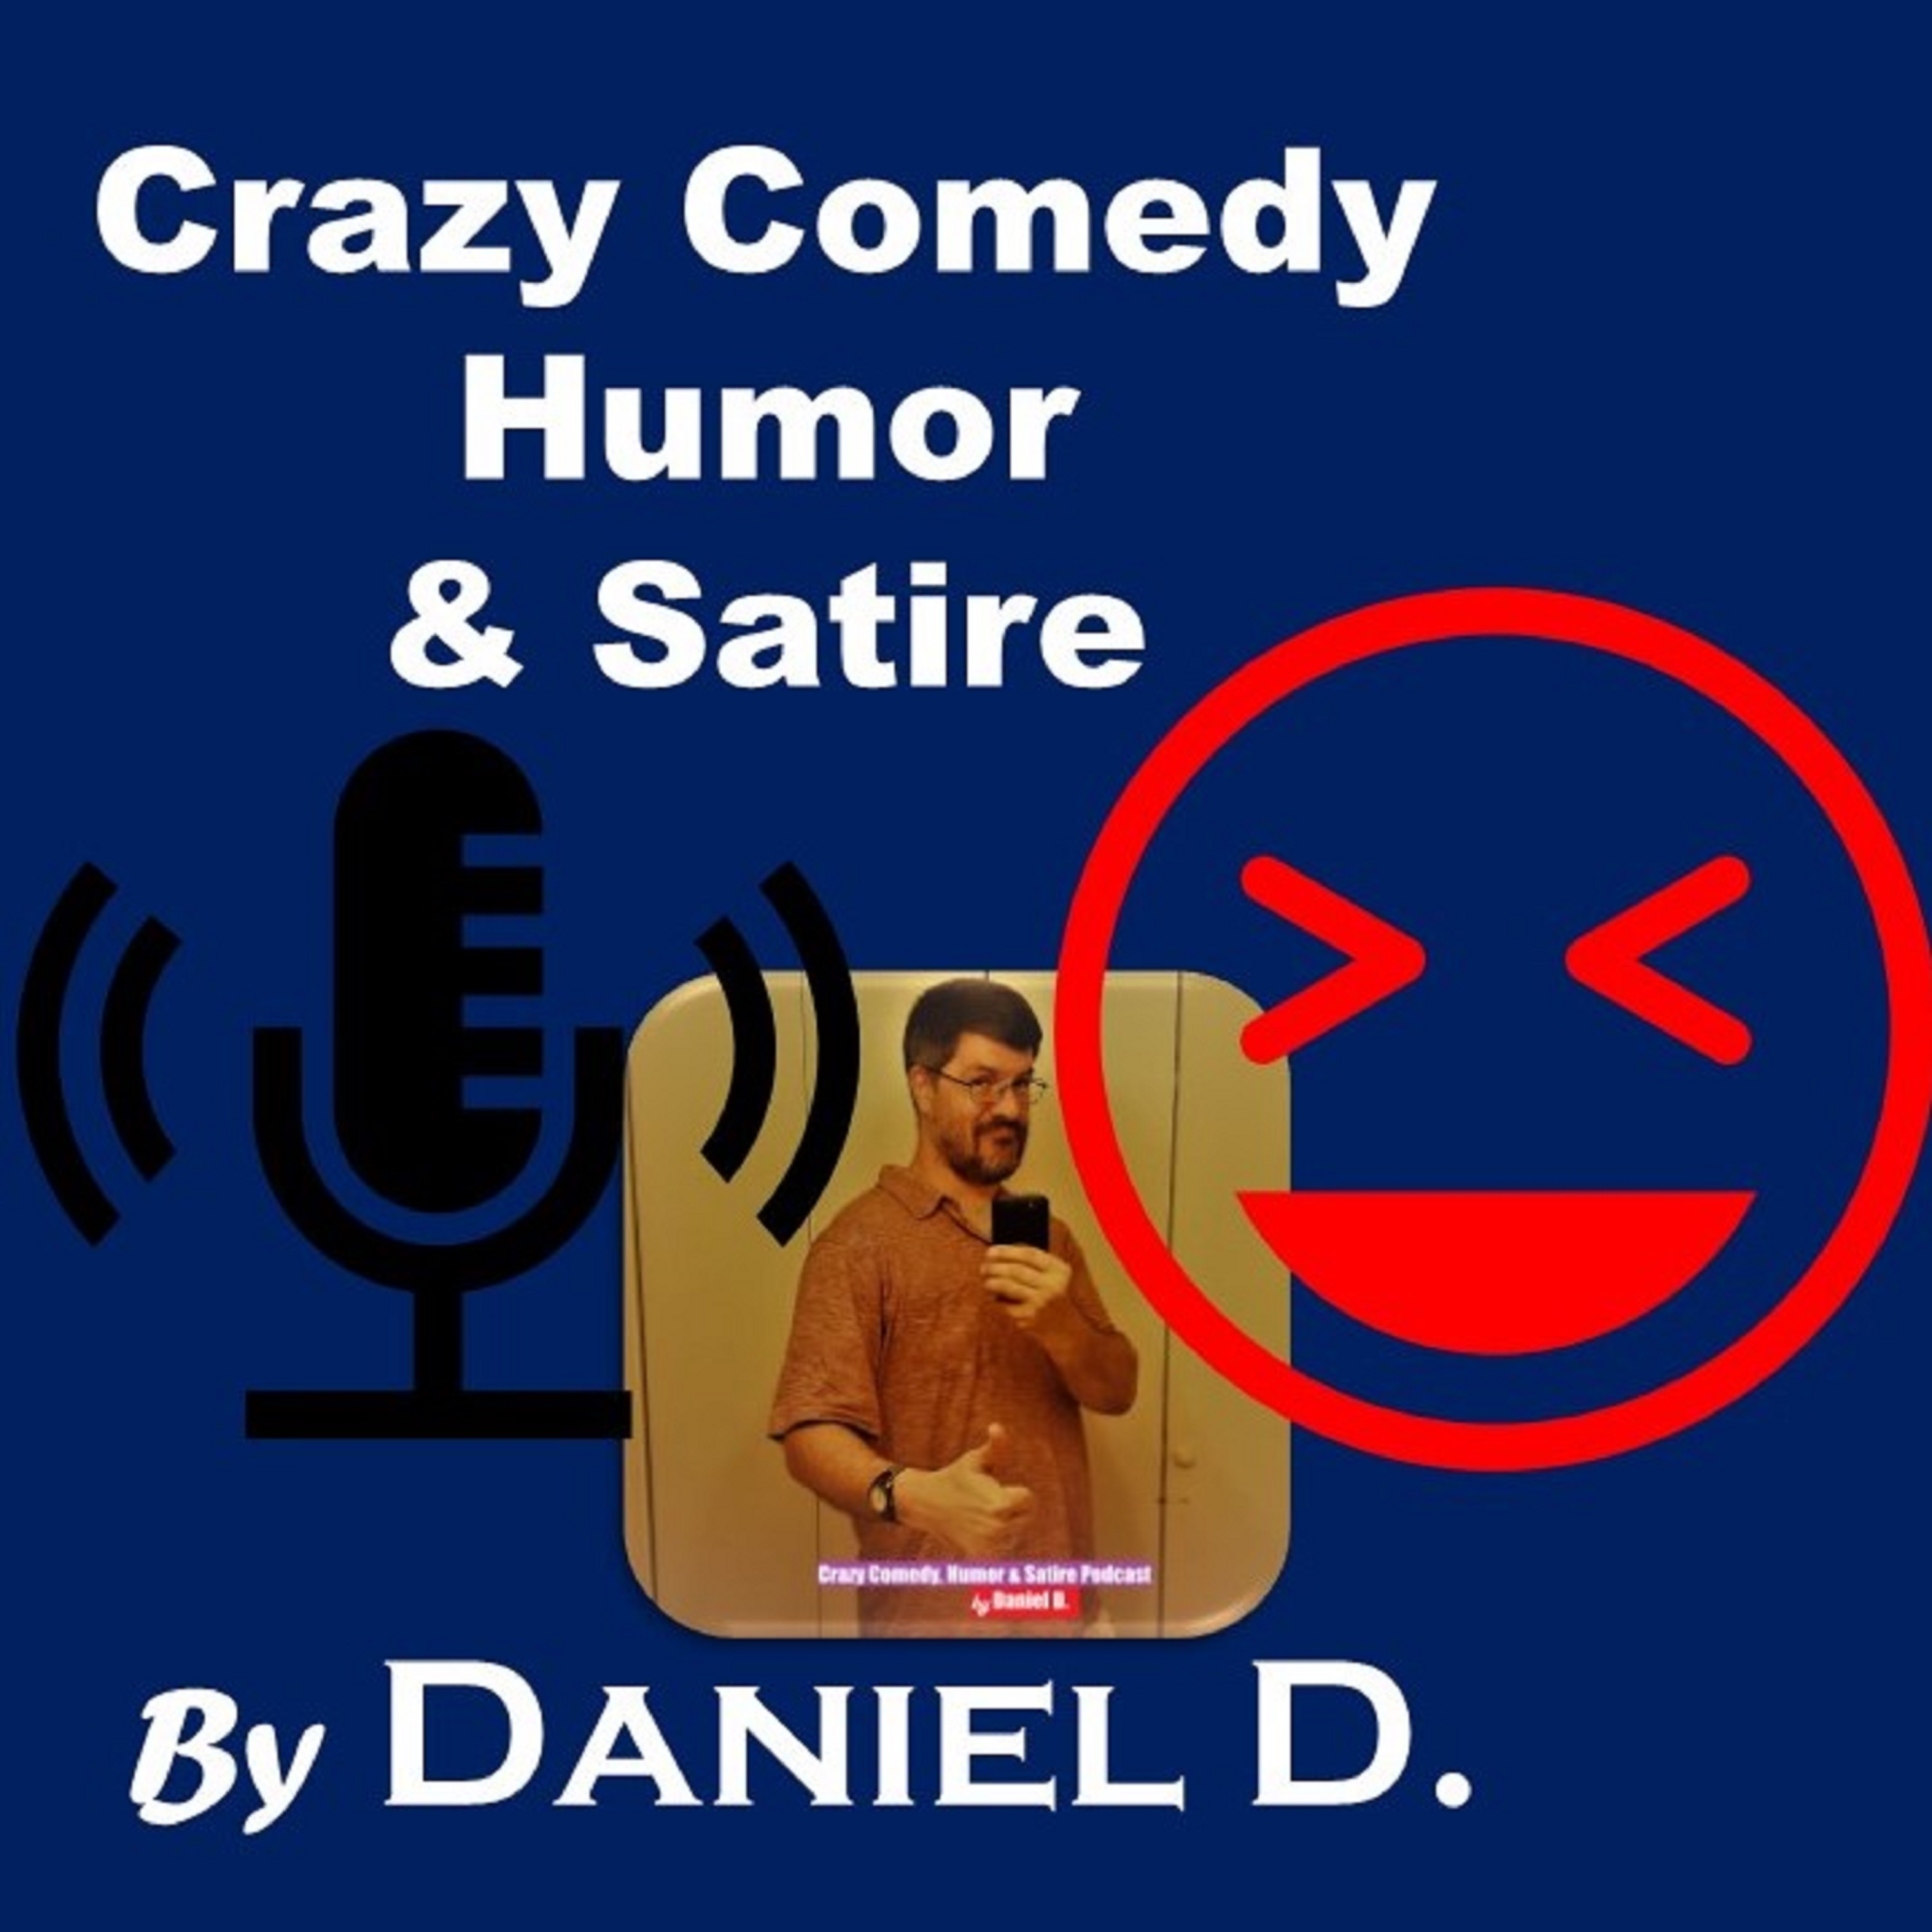 Artwork for Introduction to the Crazy Comedy, Humor, and Satire Podcast by Daniel D